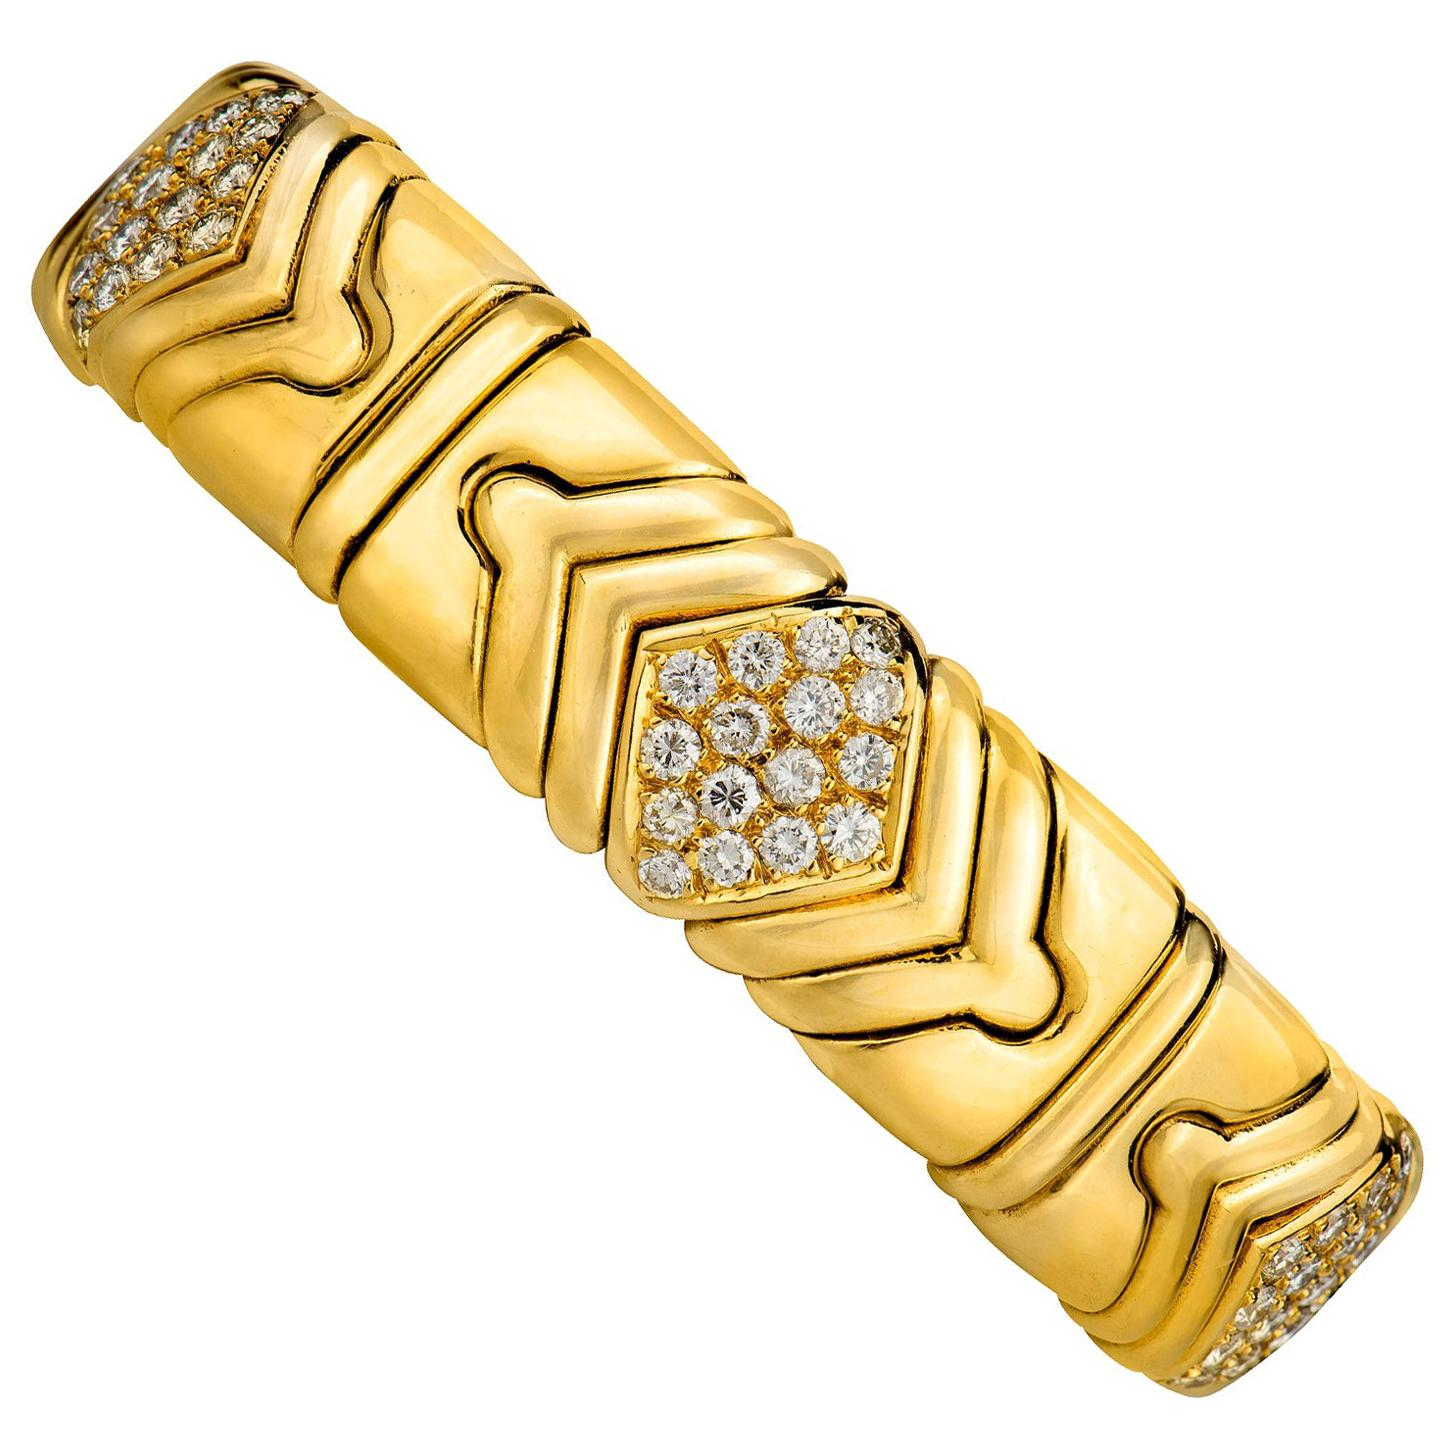 Bulgari Diamond Bangle Bracelet